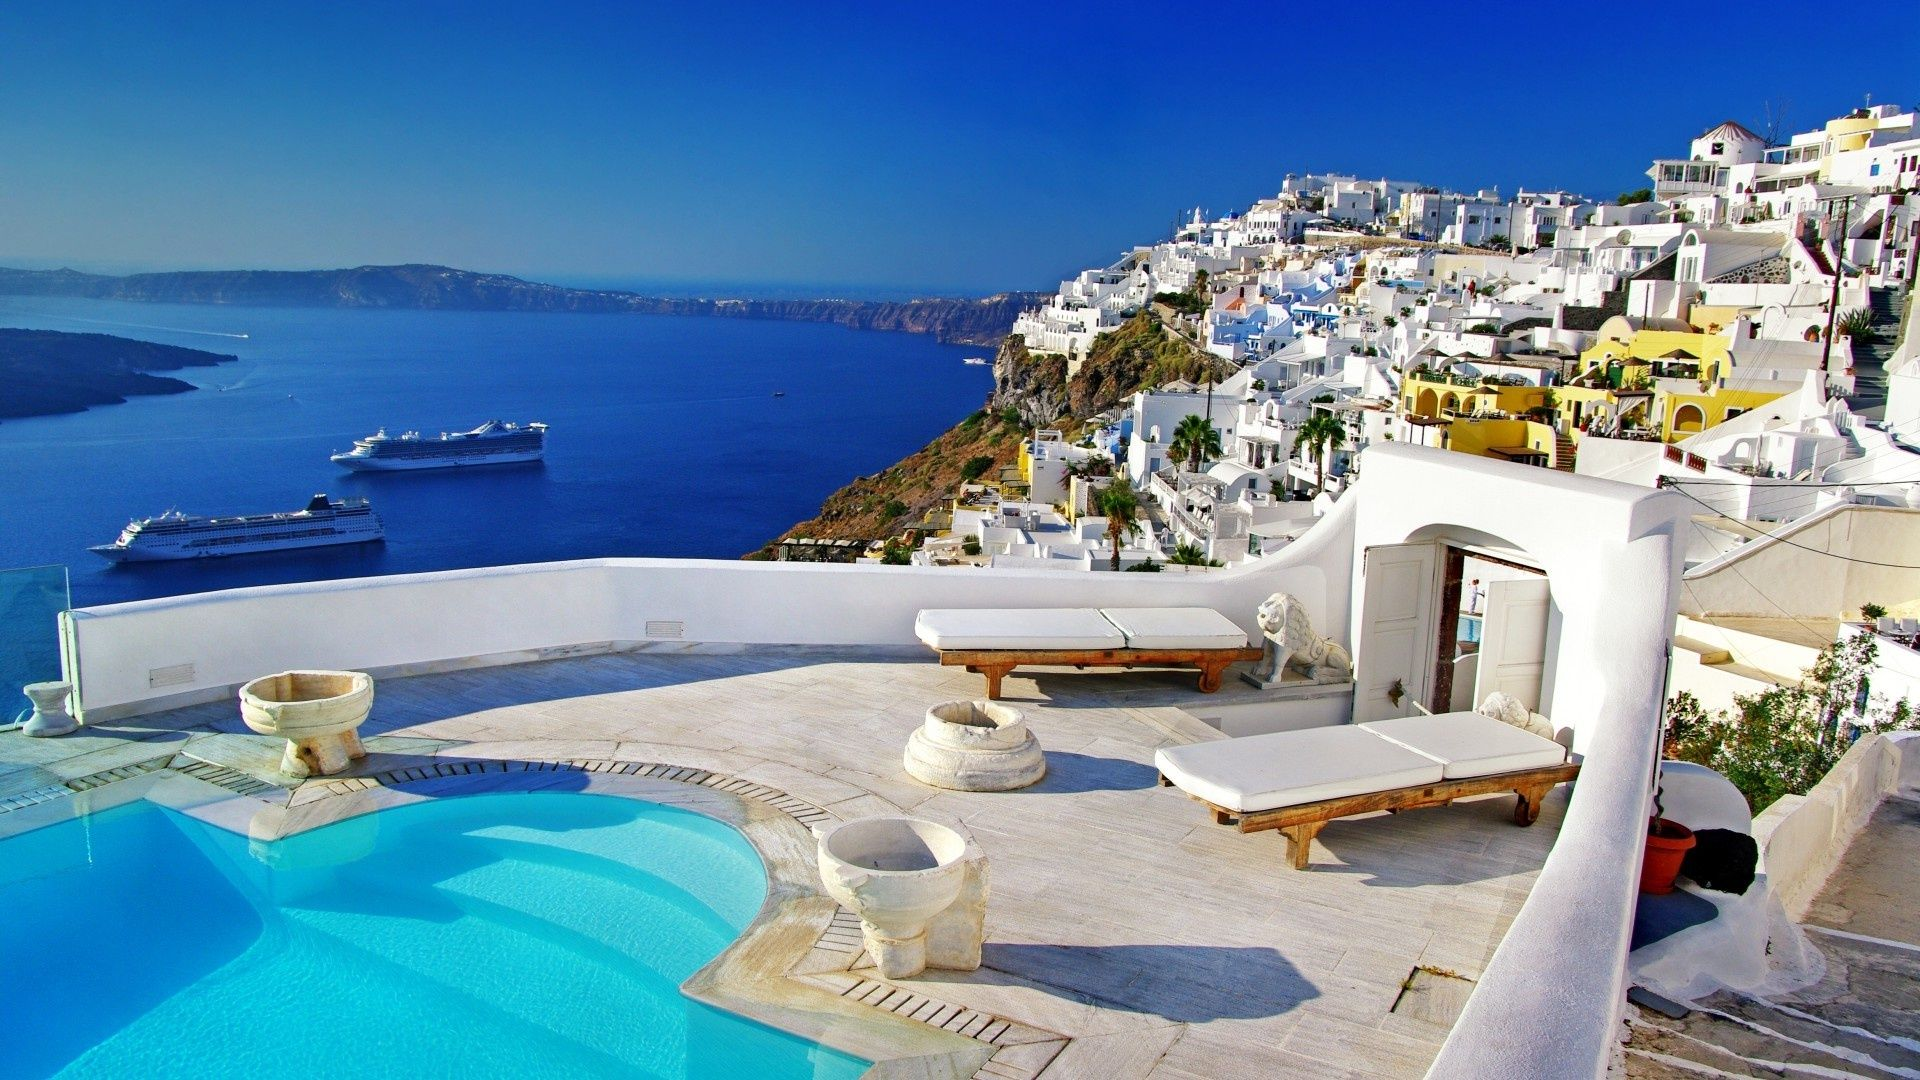 Pin by Tasos Perte Tzortzis on HELLAS Santorini greece 1920x1080